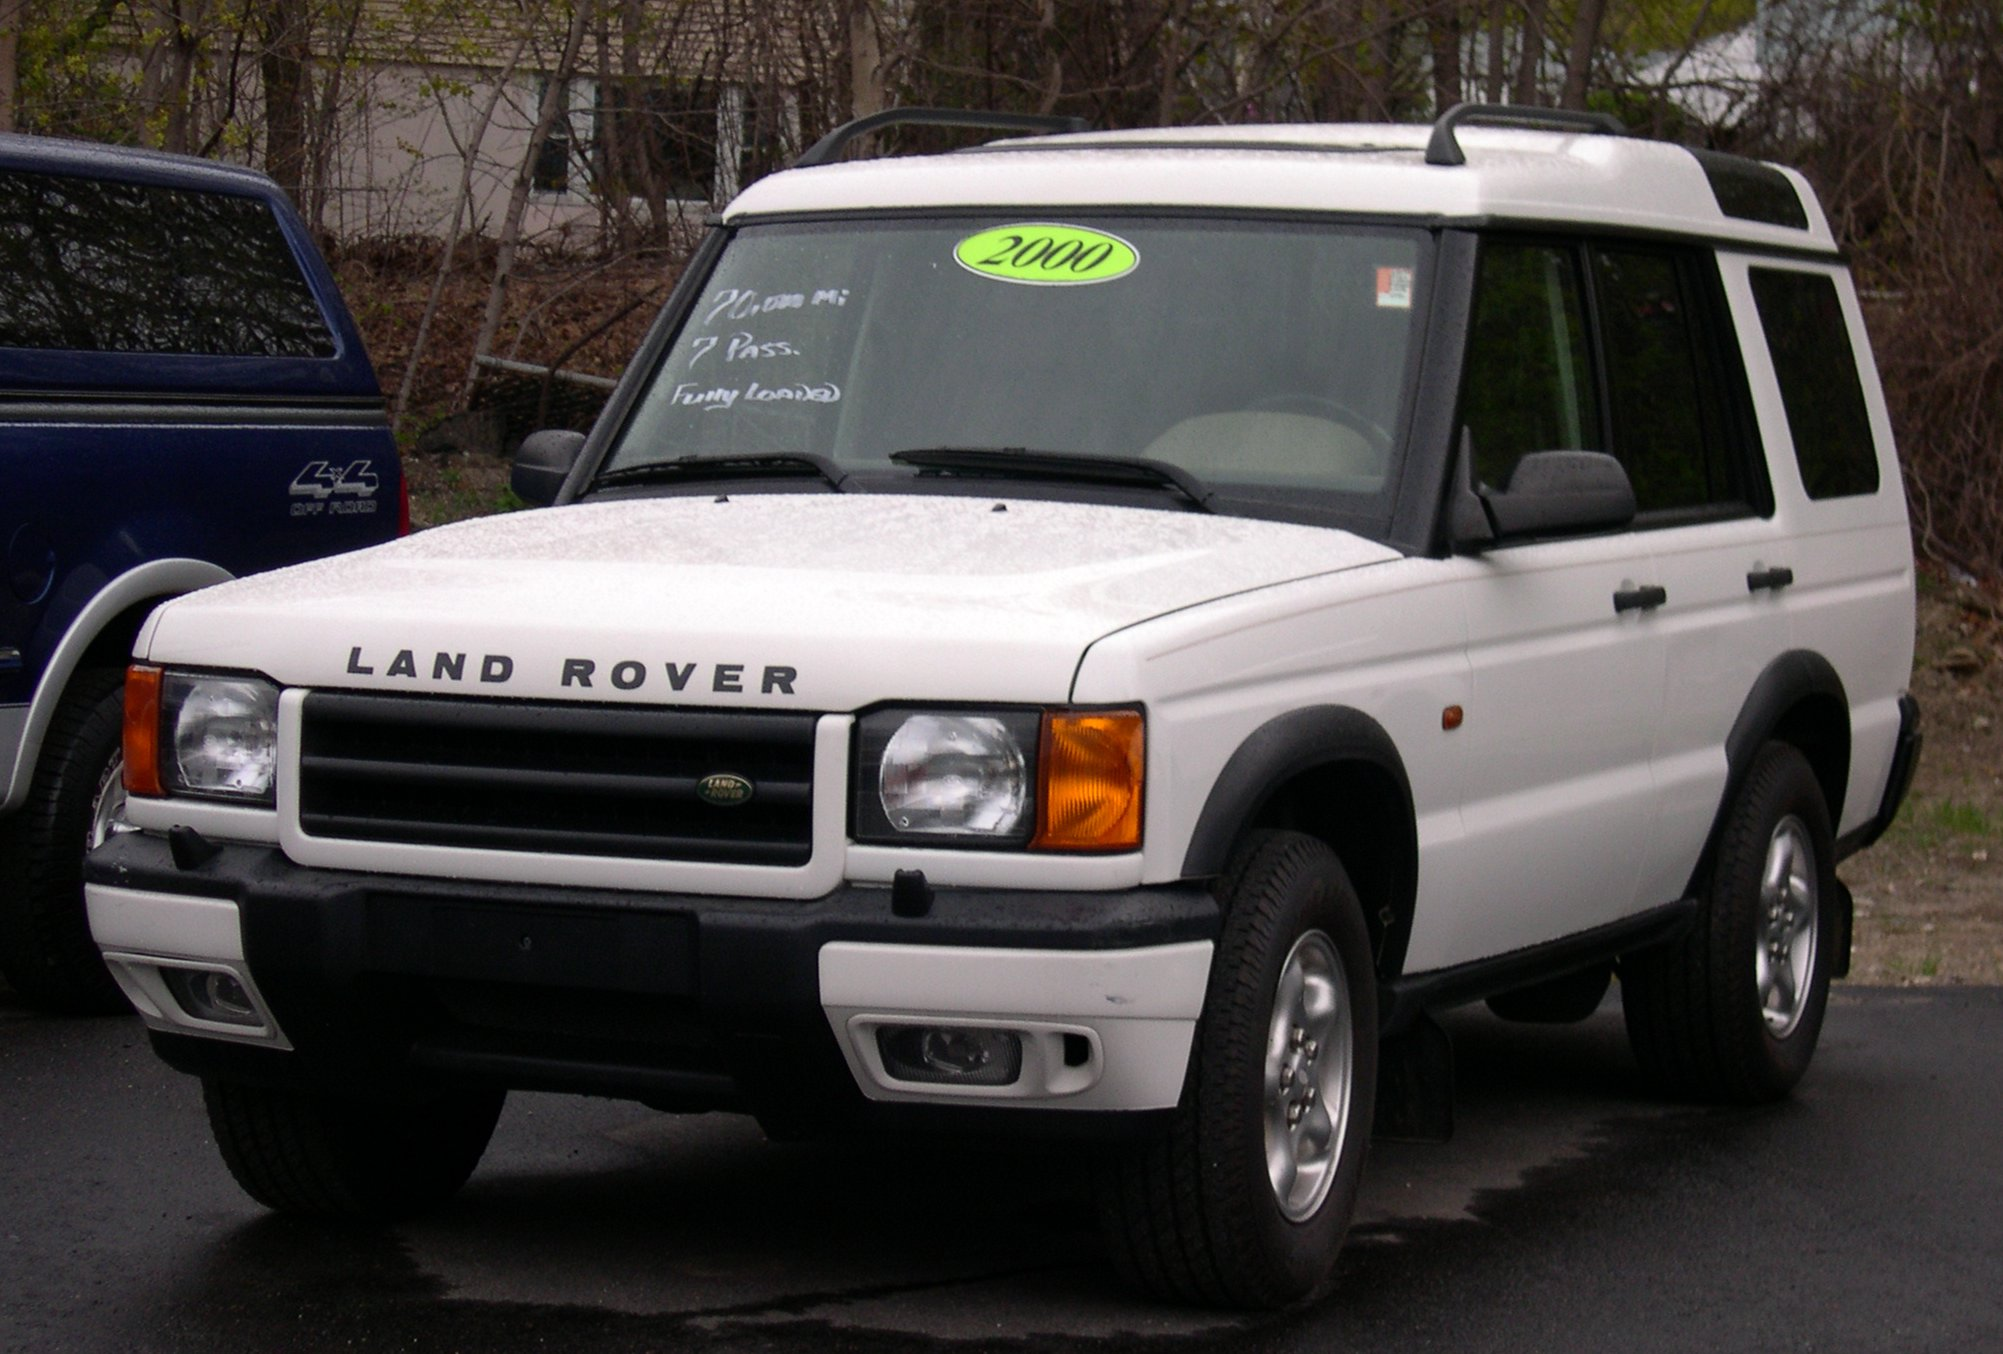 Beschrijving 2000 Land Rover Discovery white photos Pose Desktop Backgrounds